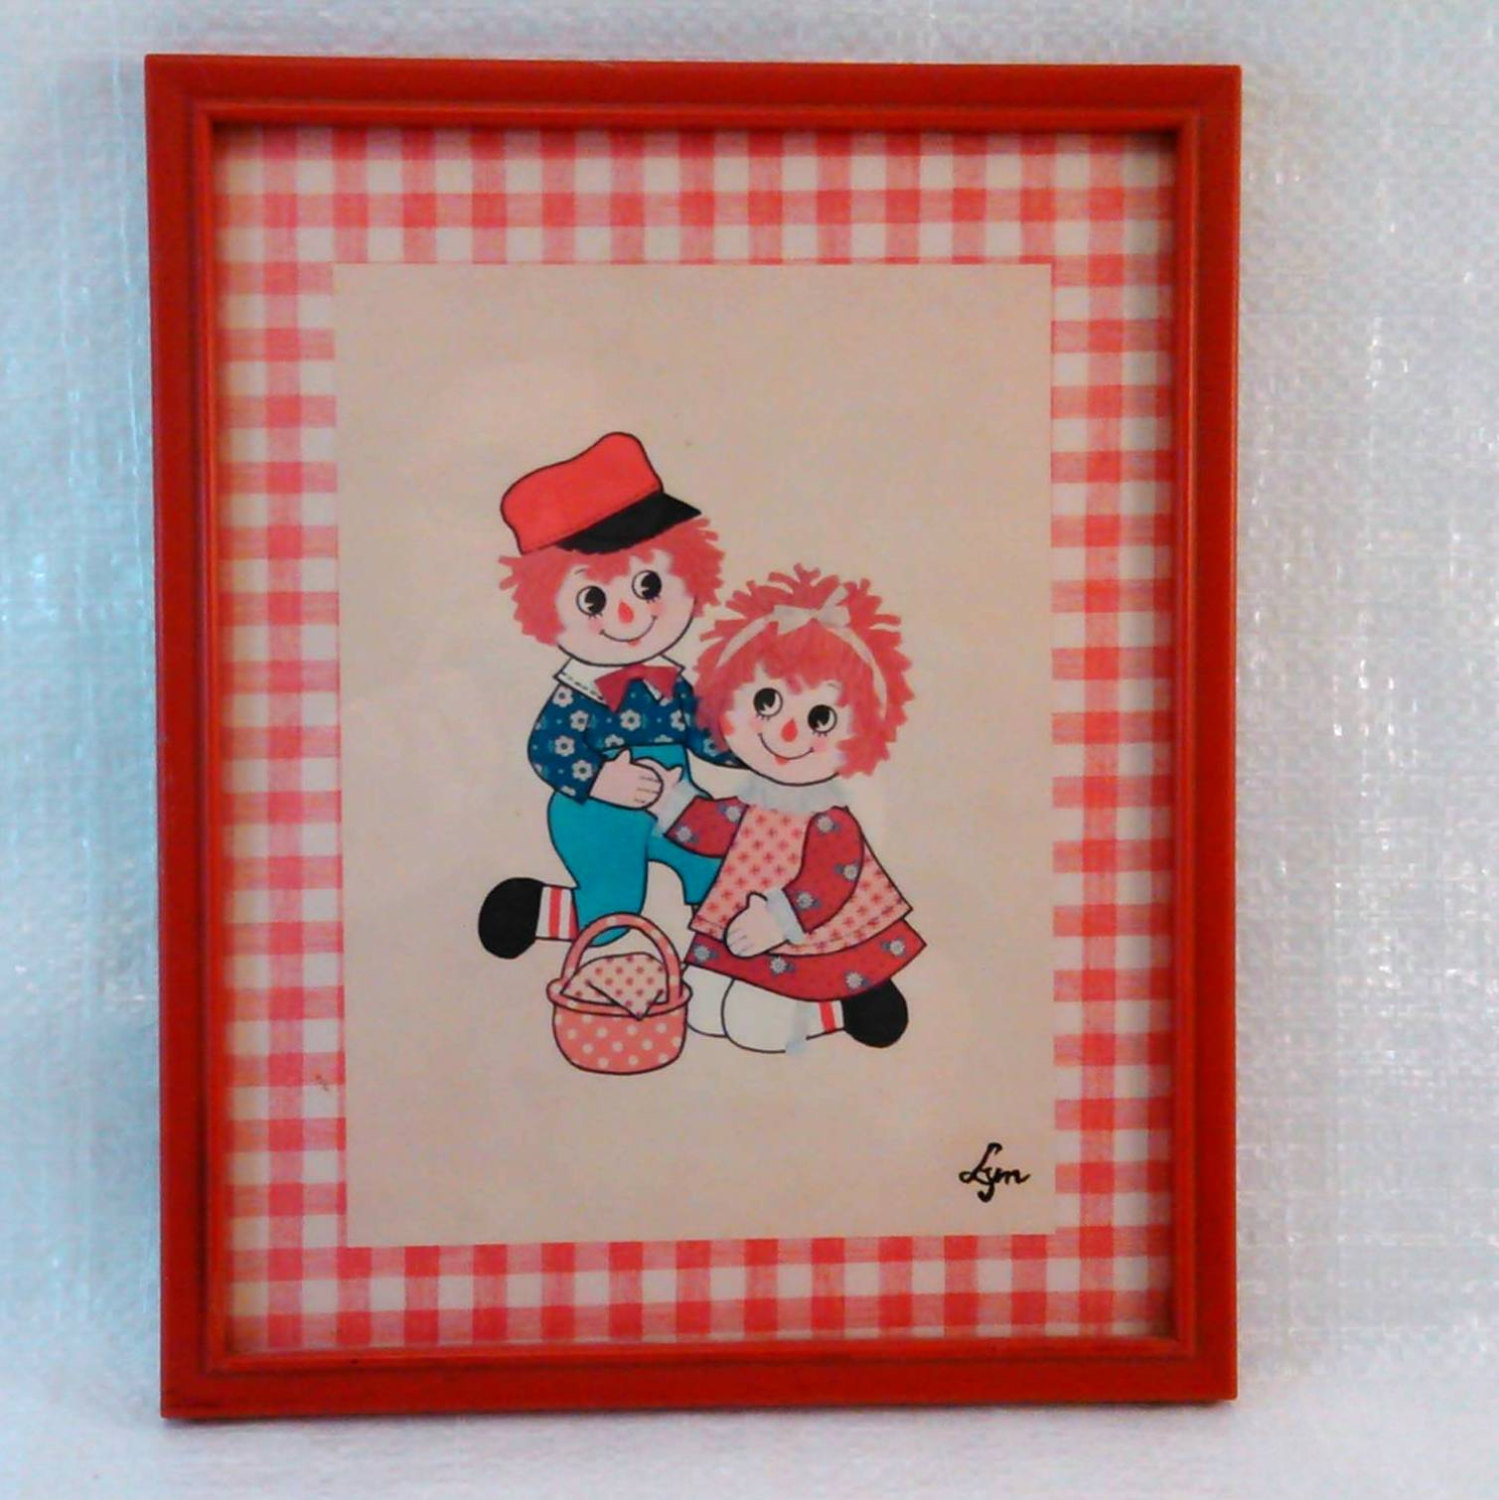 "Vintage Print ""Rag Dolls"" by Lyn 8 1/2 x 10 1/2 Framed"